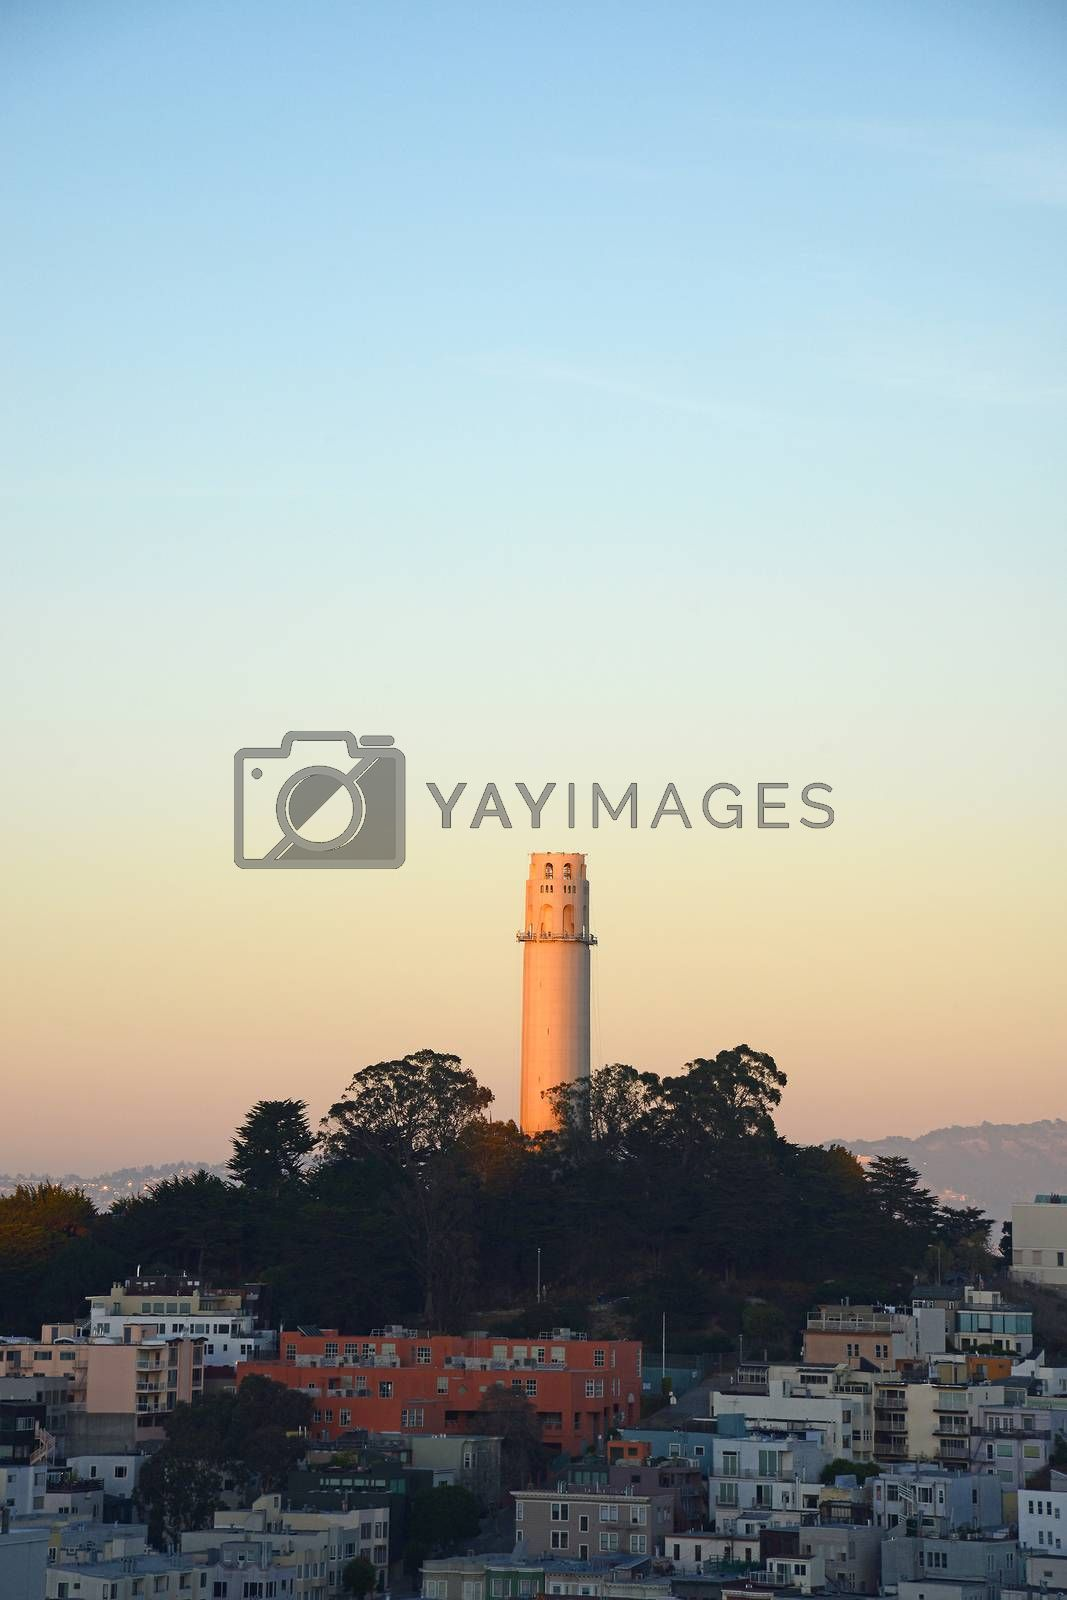 Royalty free image of coit tower during sunset by porbital